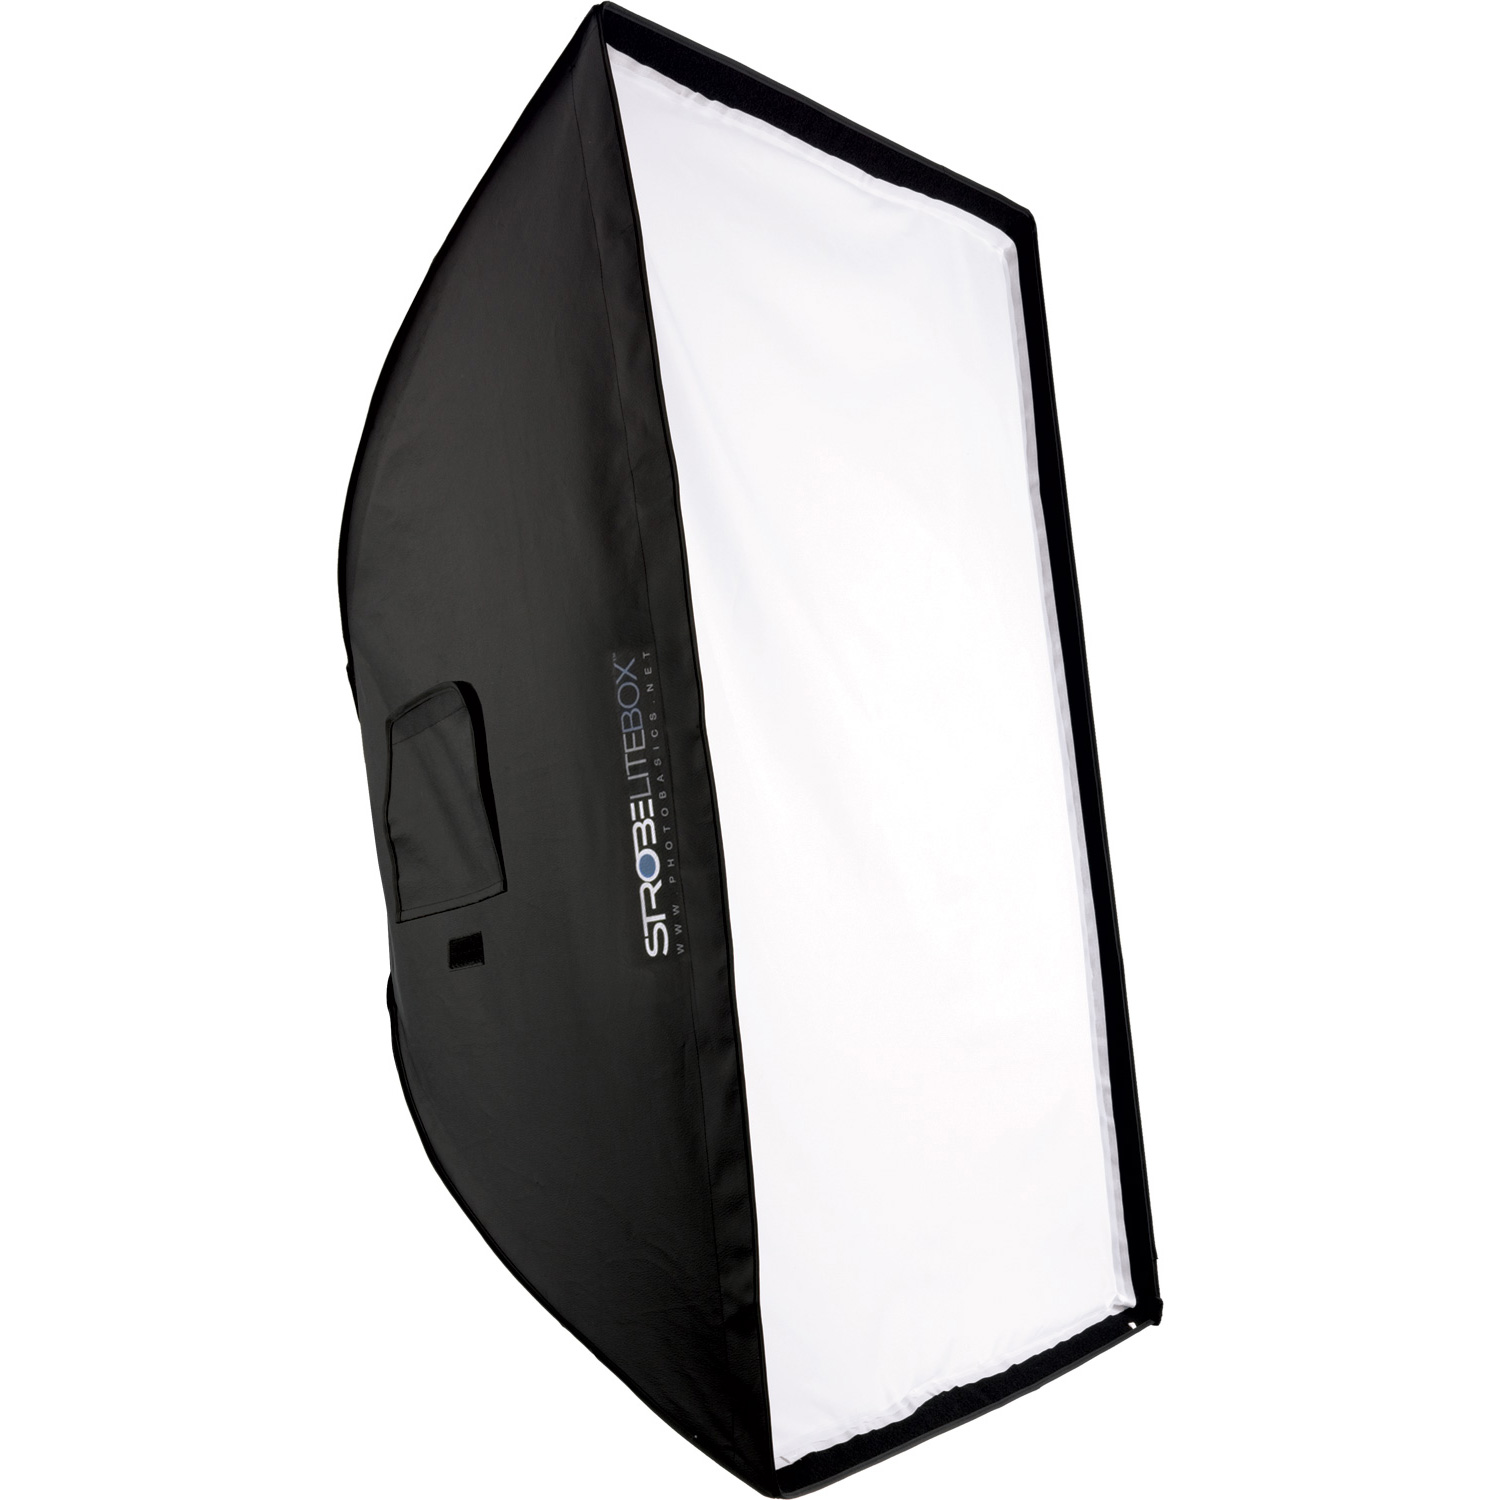 24-in. x 32-in. Strobelite Softbox